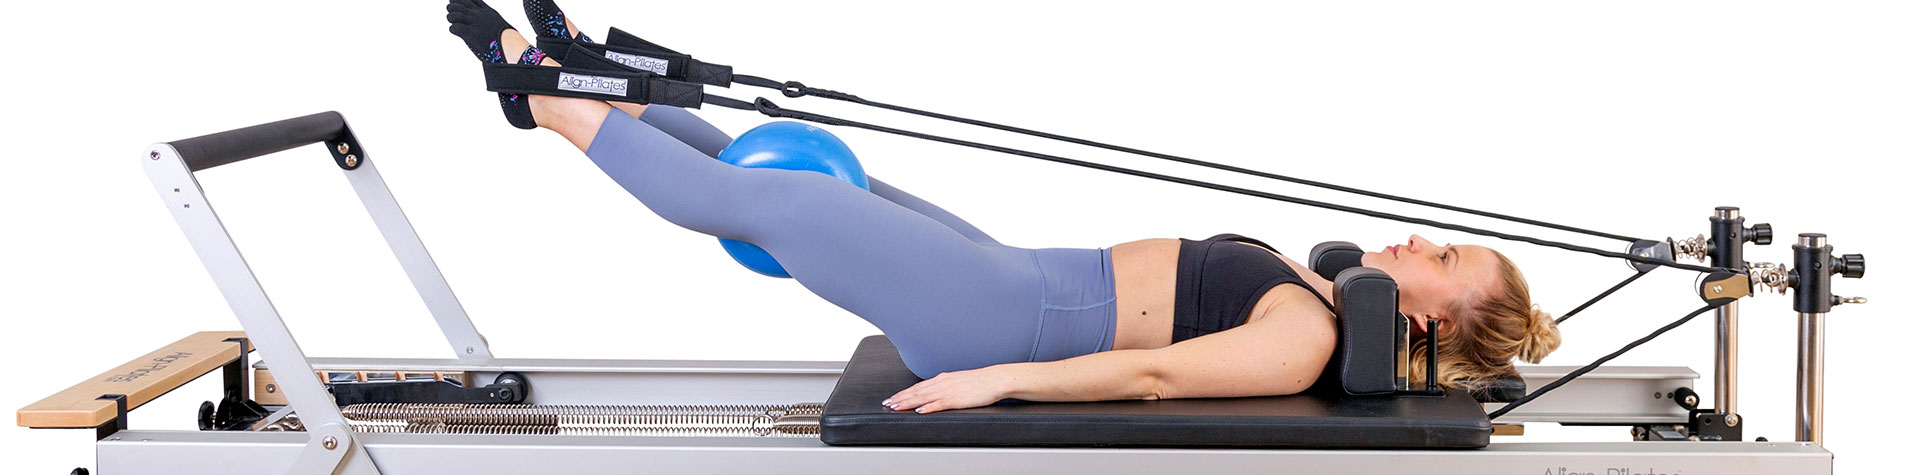 Align Pilates Reformers Available in Canada